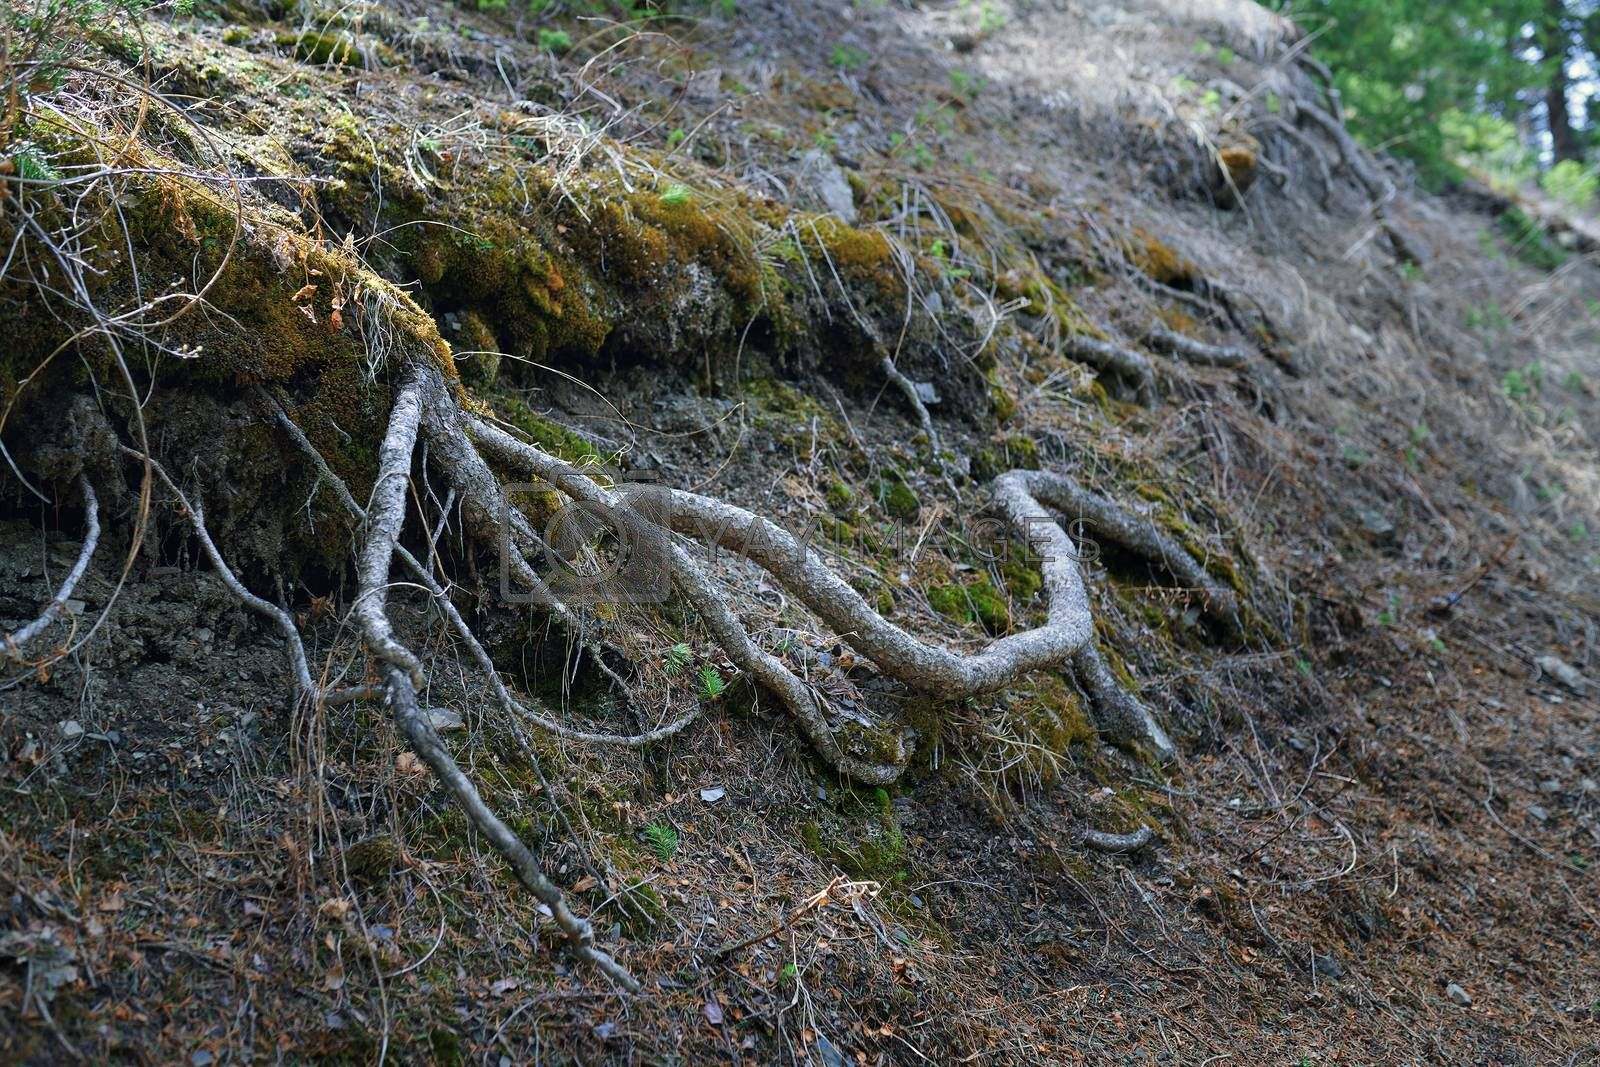 Roots of the old tree in deep forest